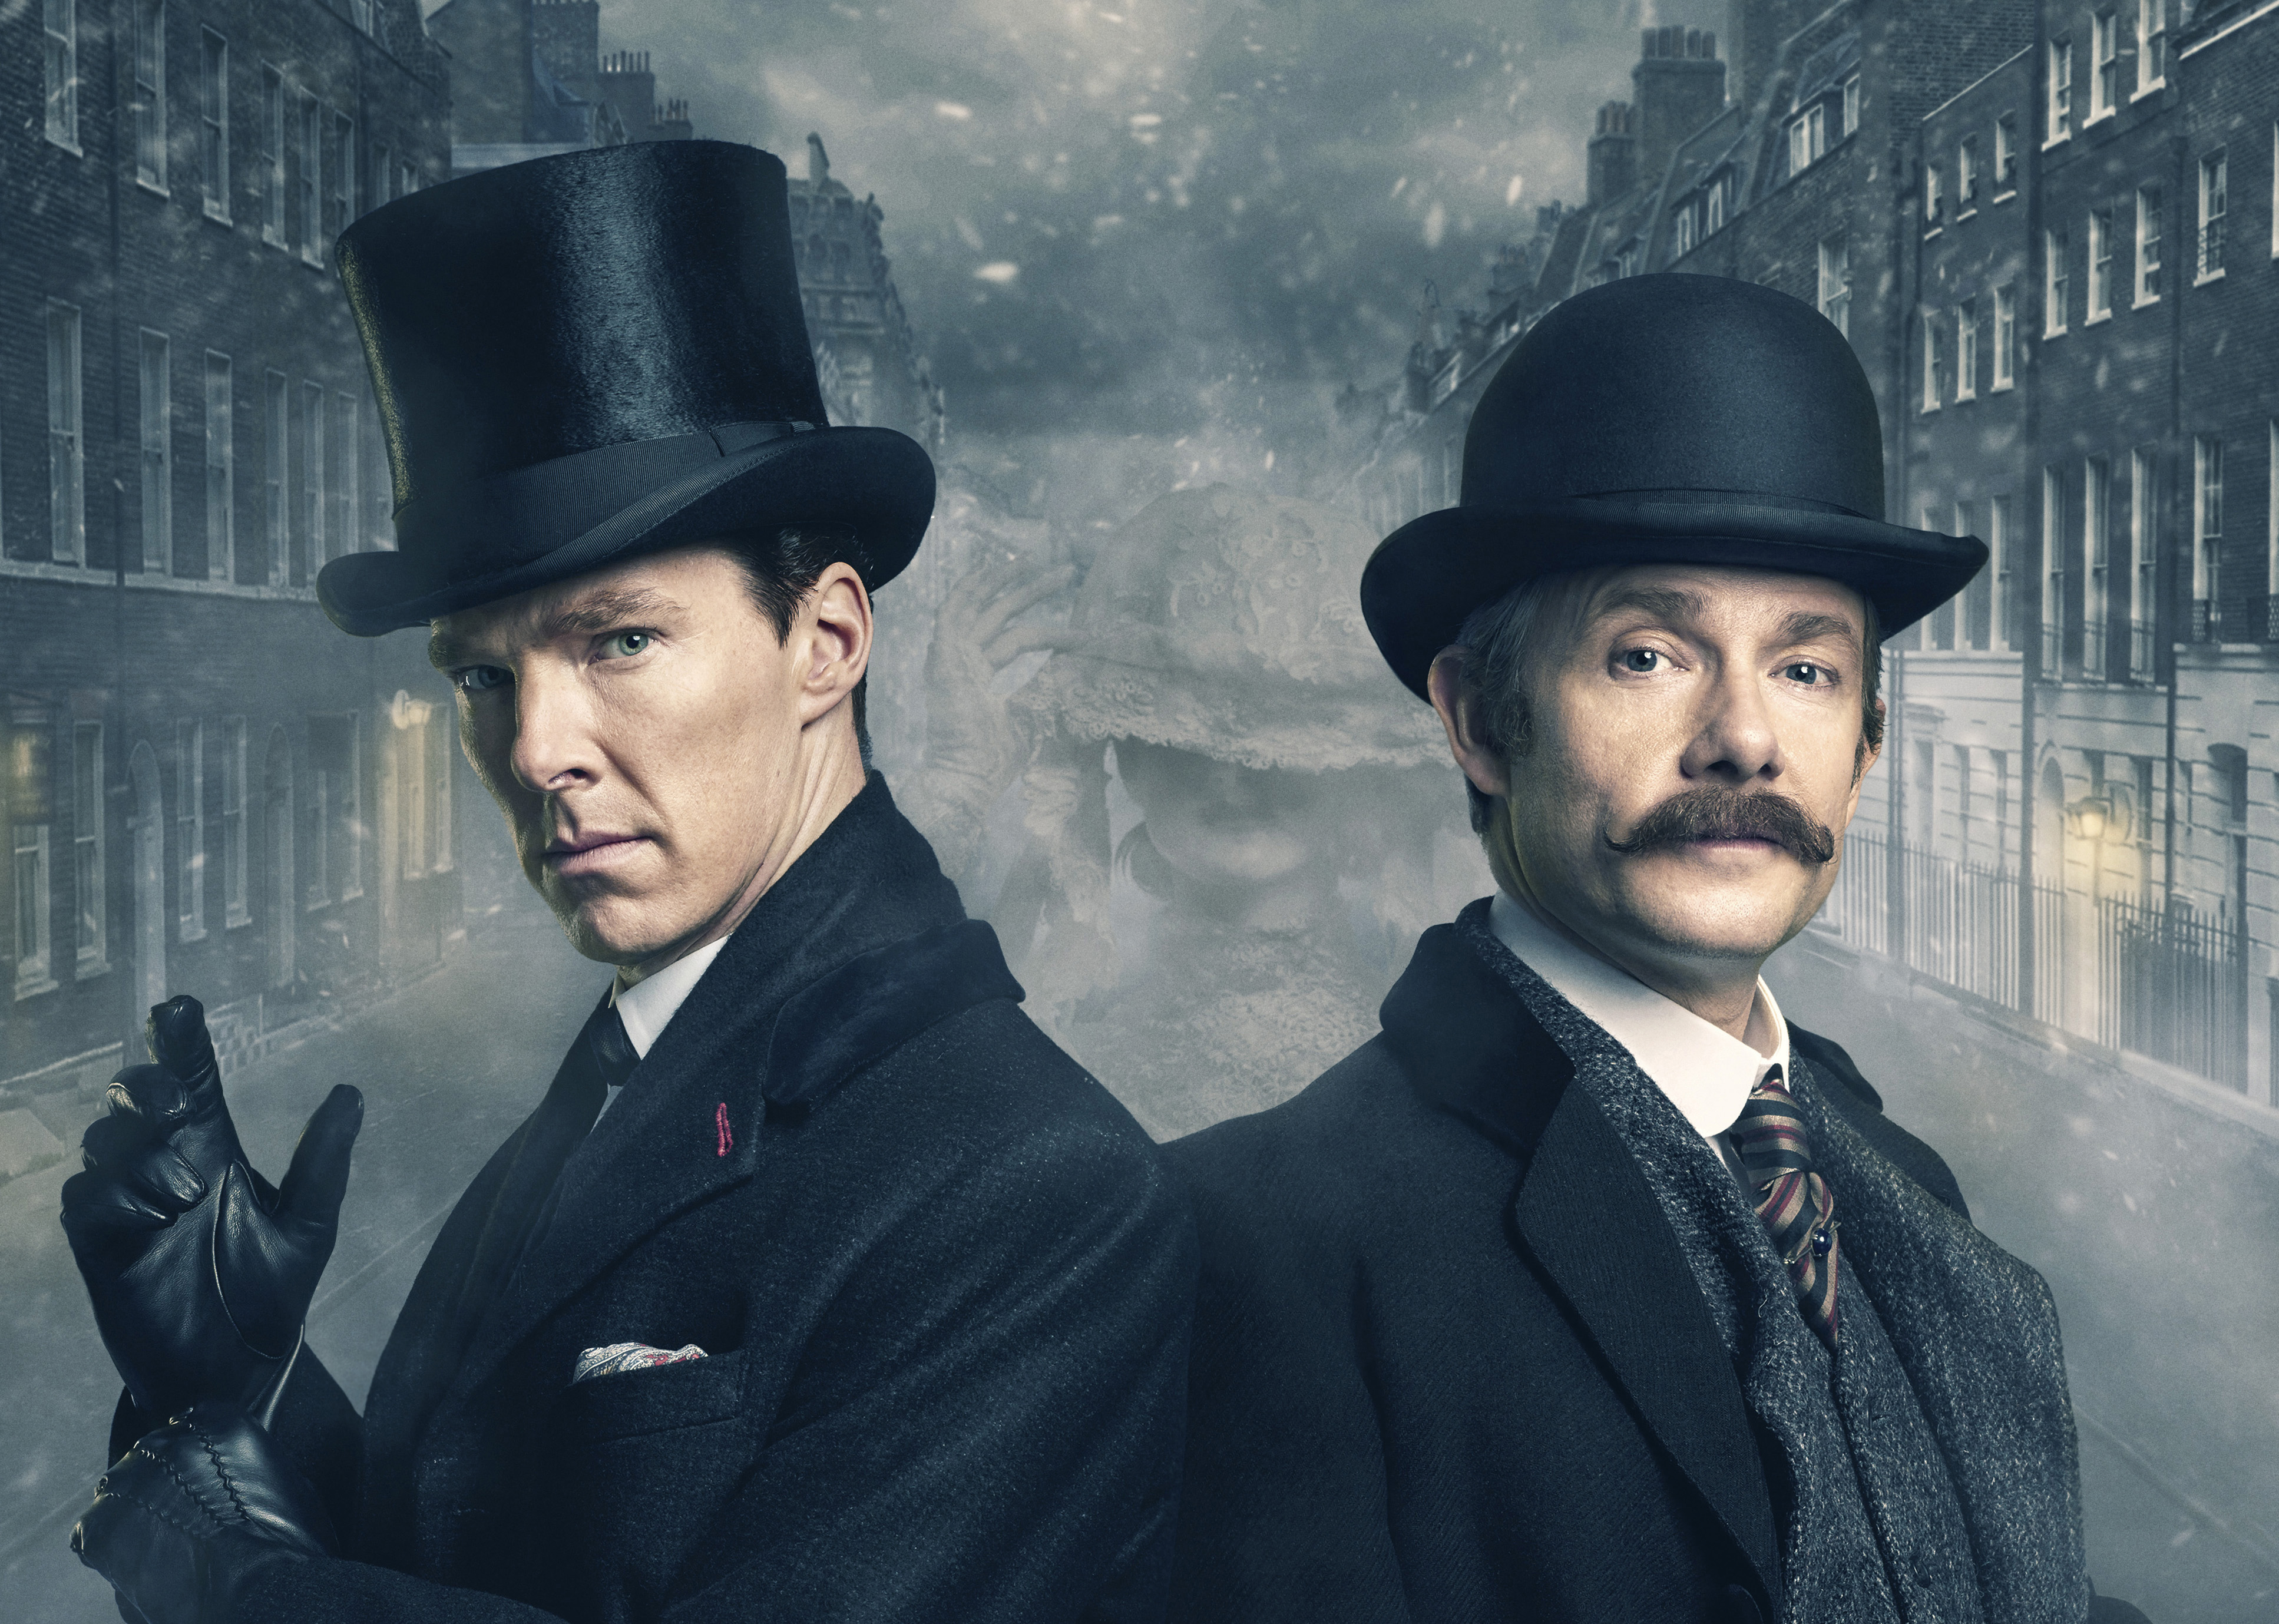 Benedict Cumberbatch And Martin Freeman Sherlock Holmes Hd Tv Shows 4k Wallpapers Images Backgrounds Photos And Pictures